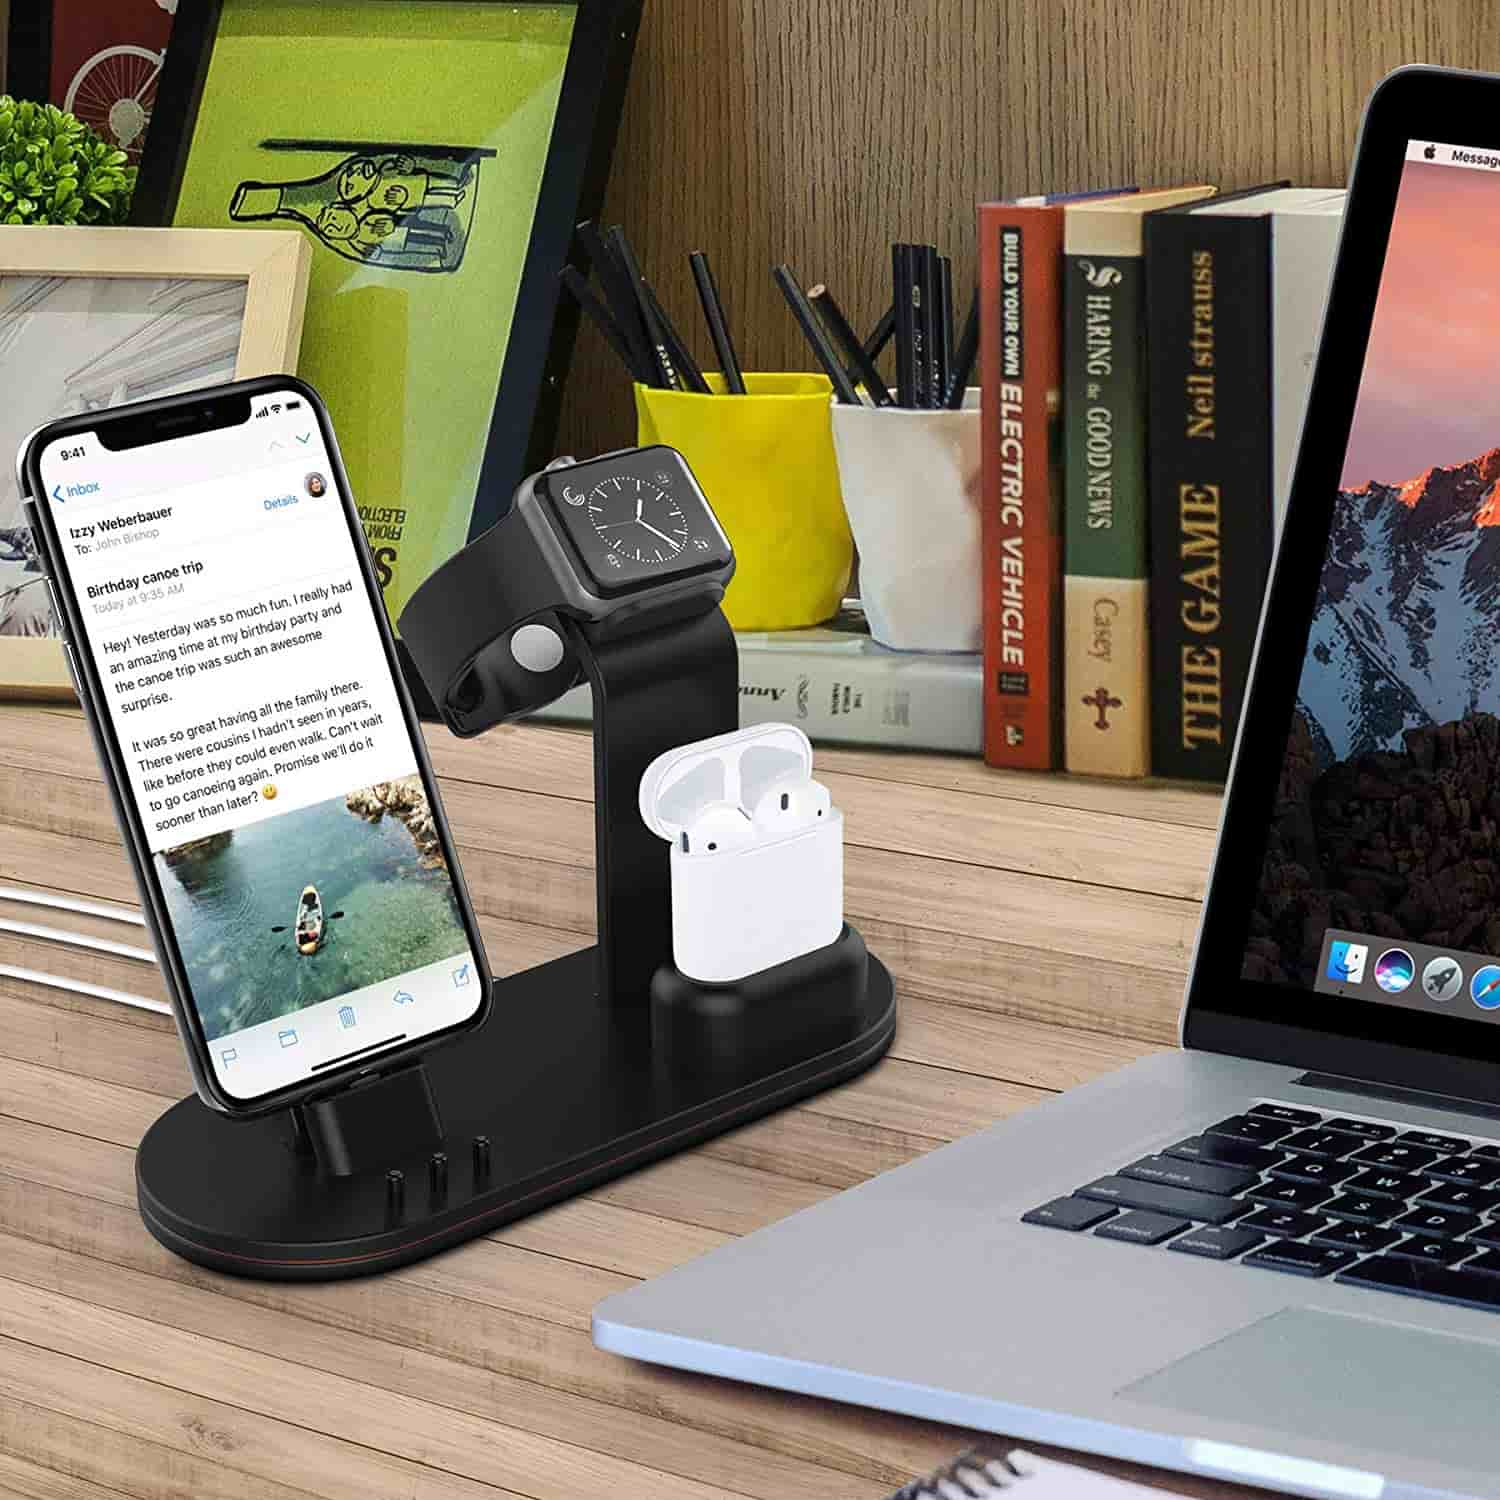 OLEBR Charging Stand for Apple Devices